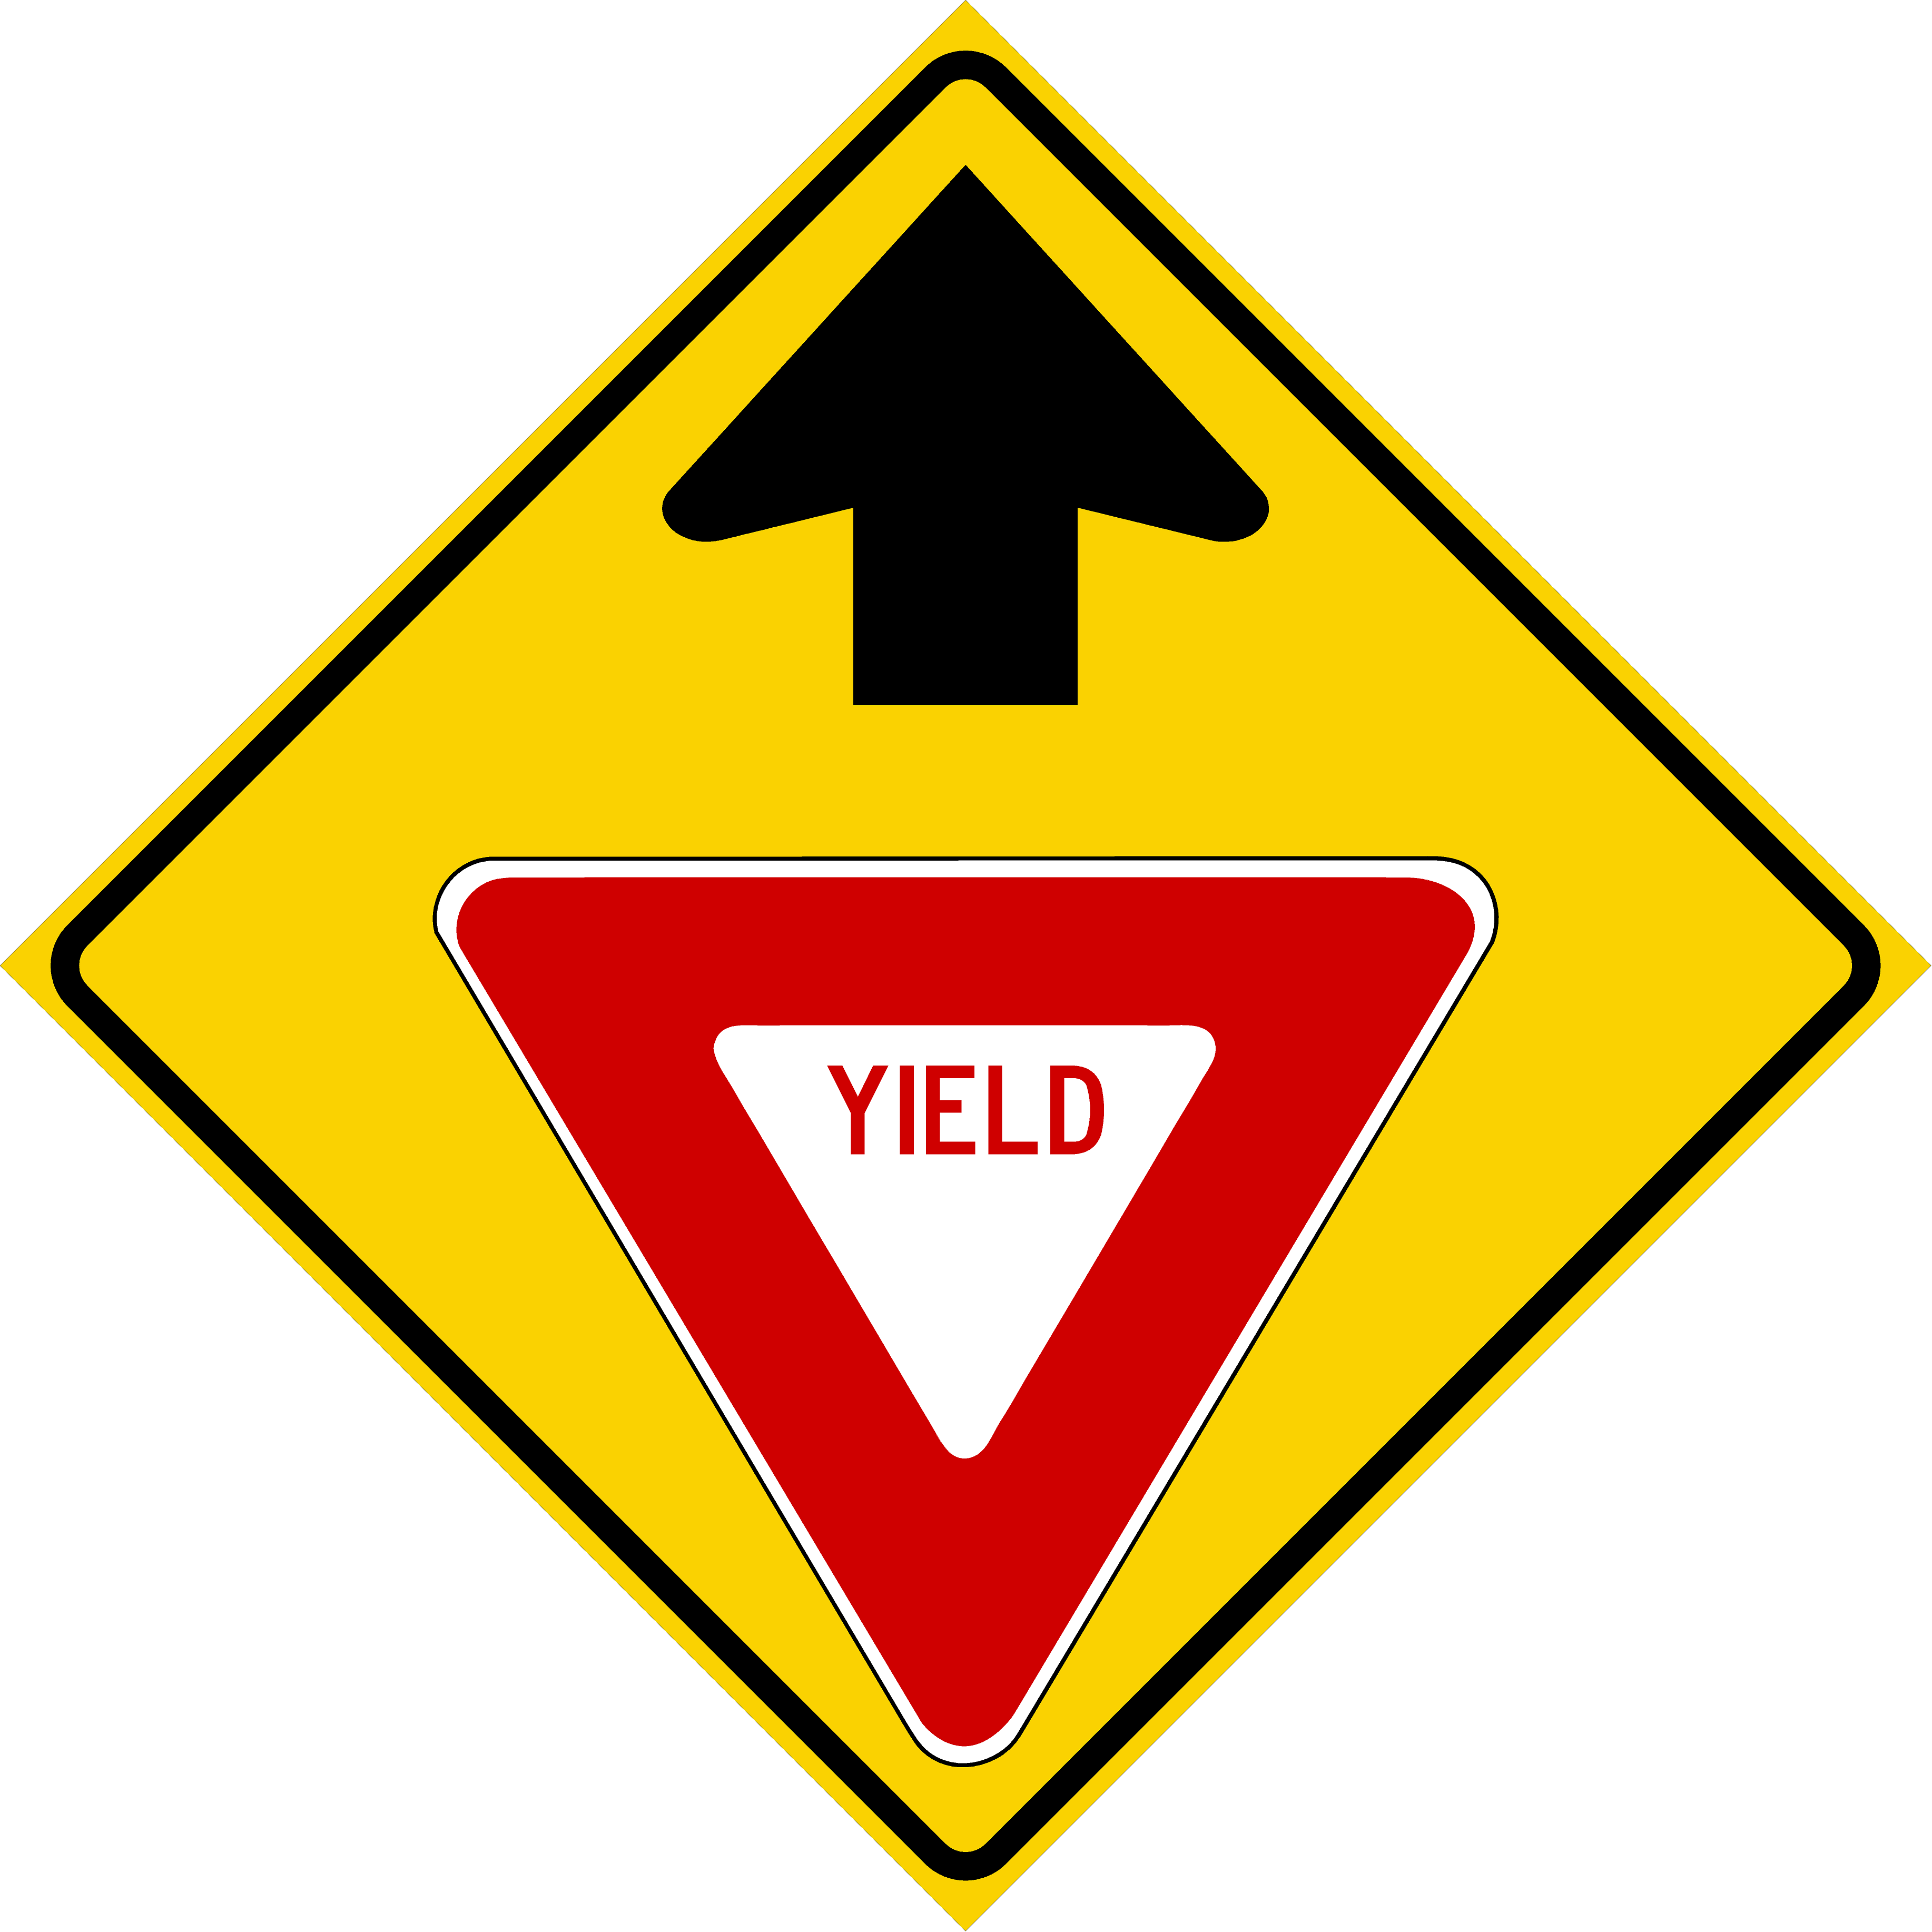 Yield Ahead (W3-2)